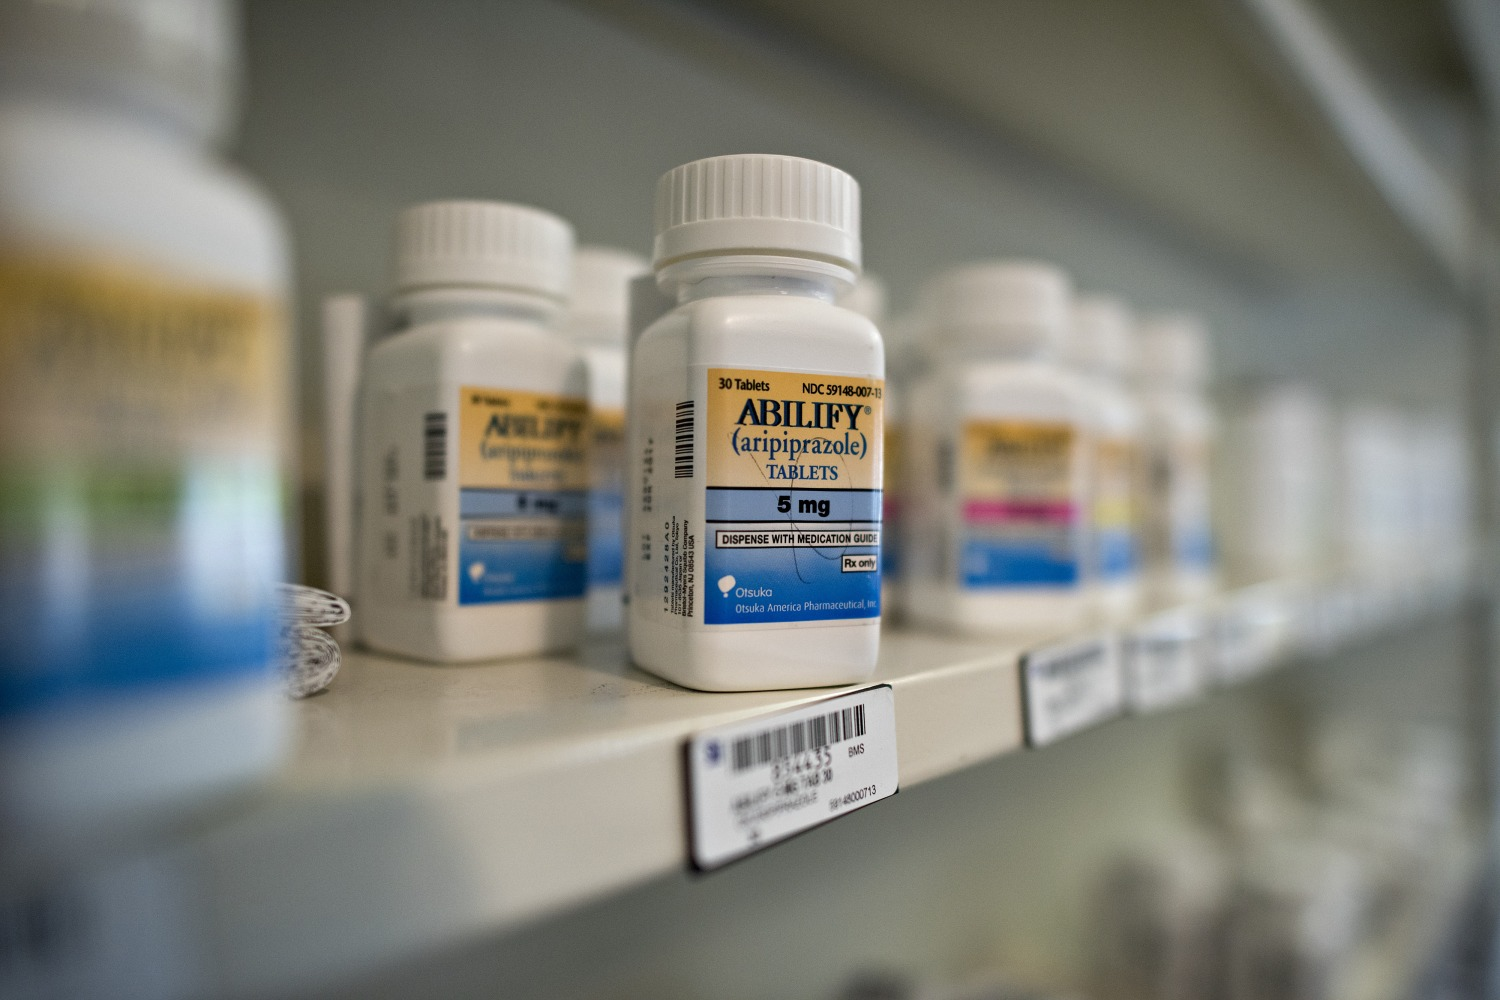 What Are The Side Effects Of Abilify